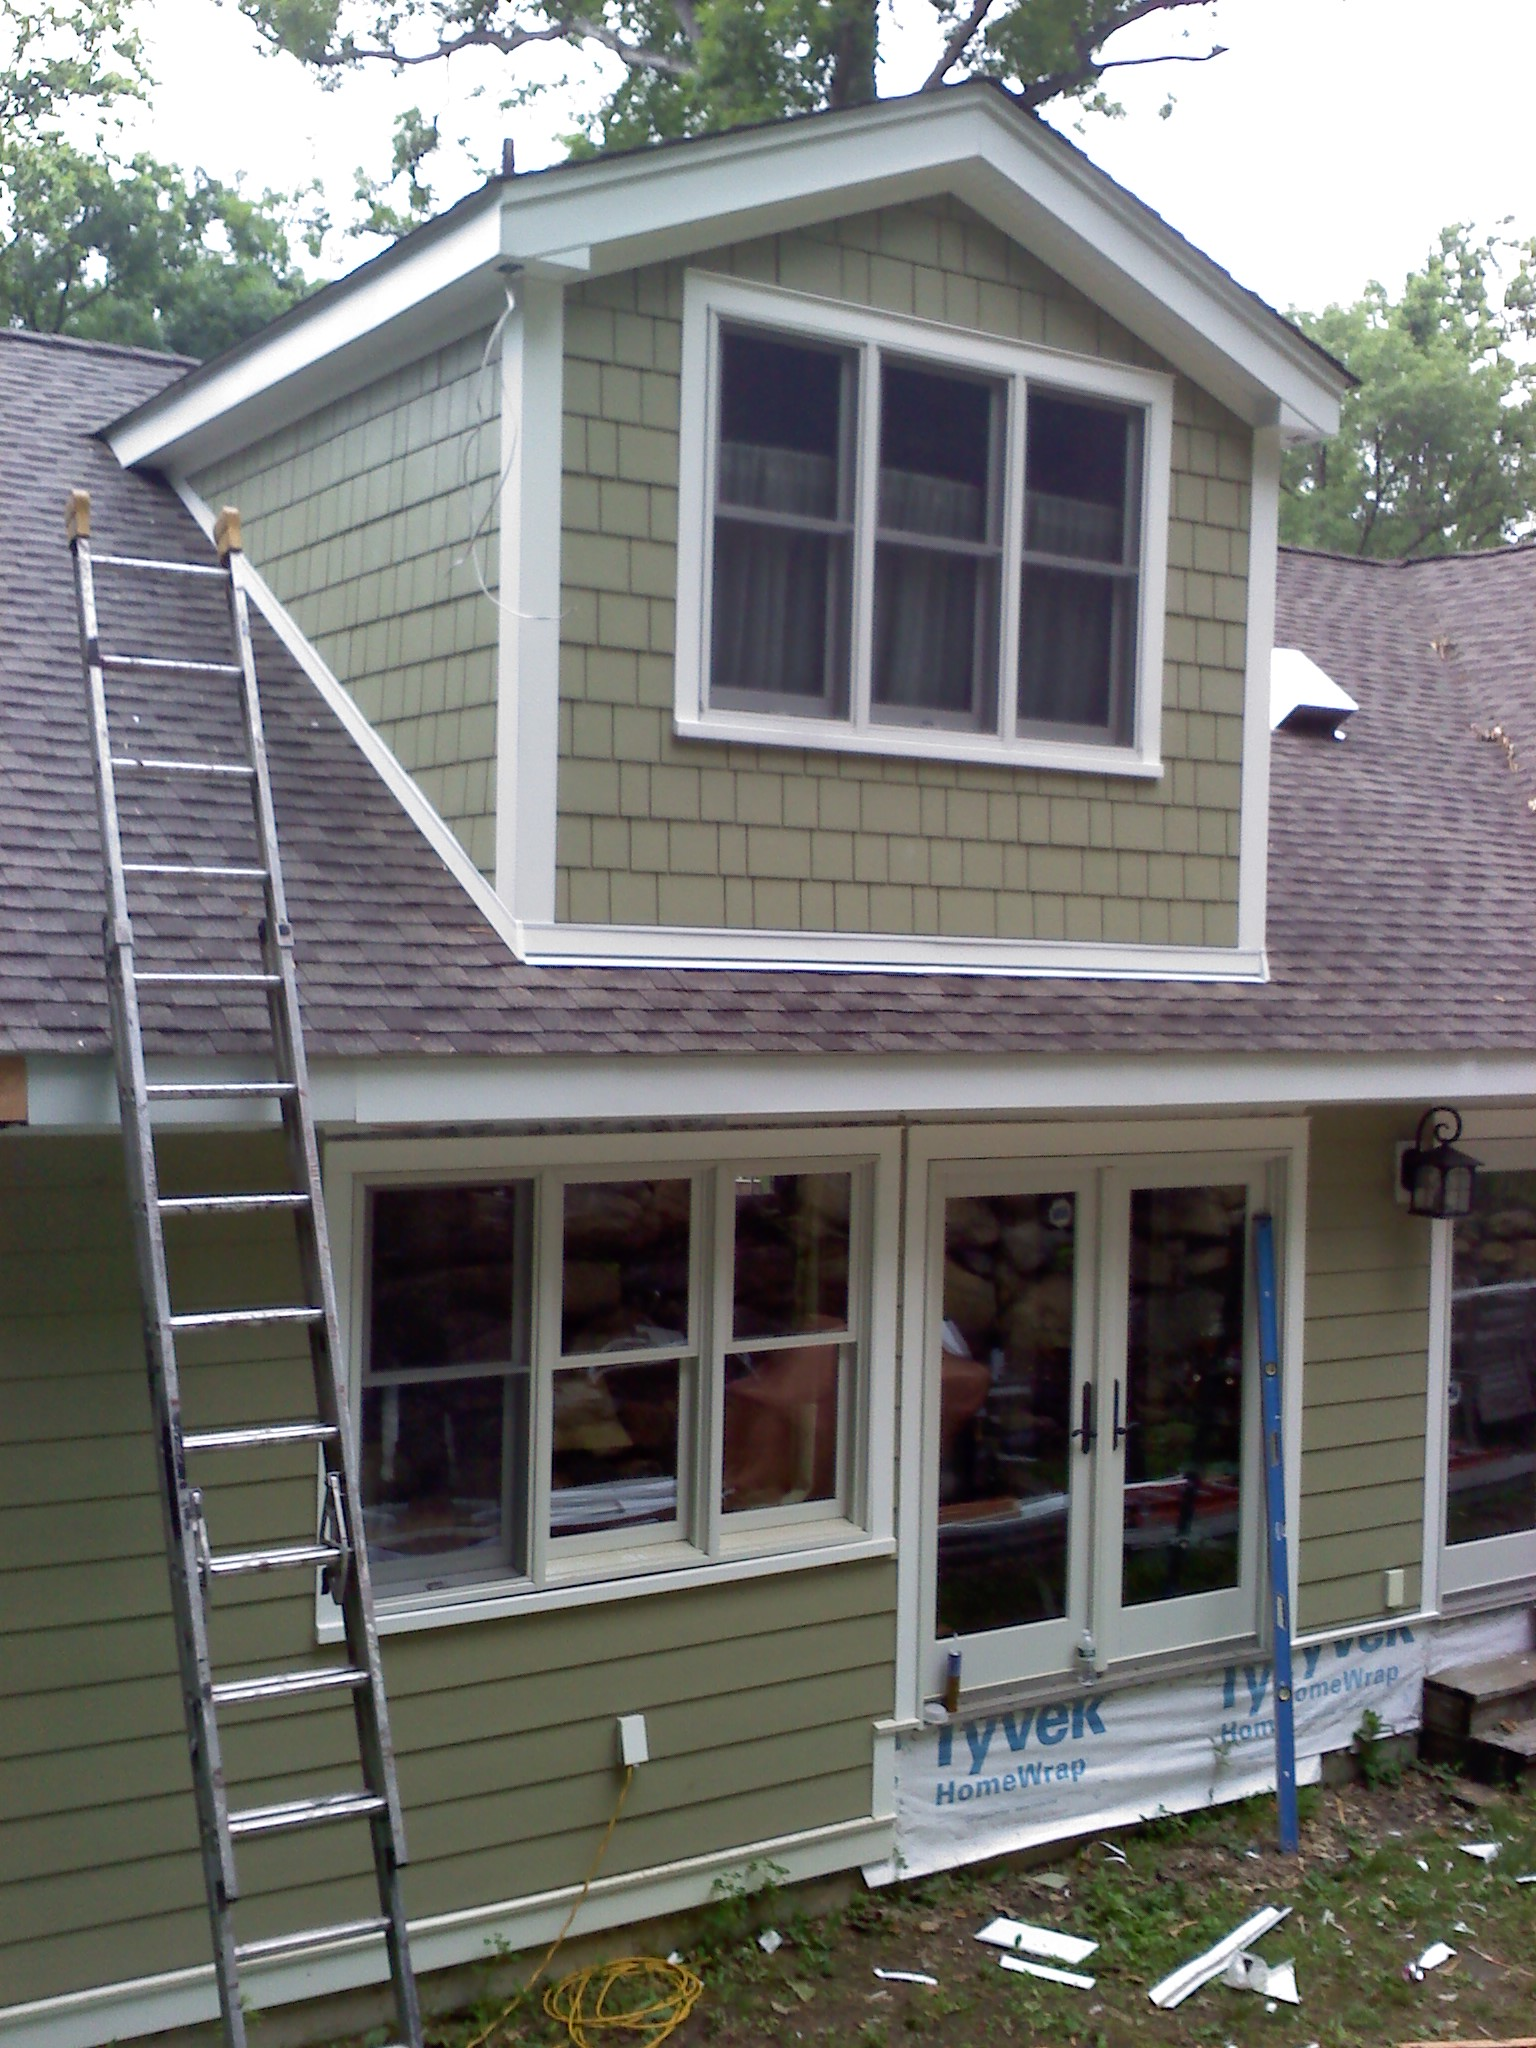 Wall To Roof Hardie Flashing Details Windows Siding